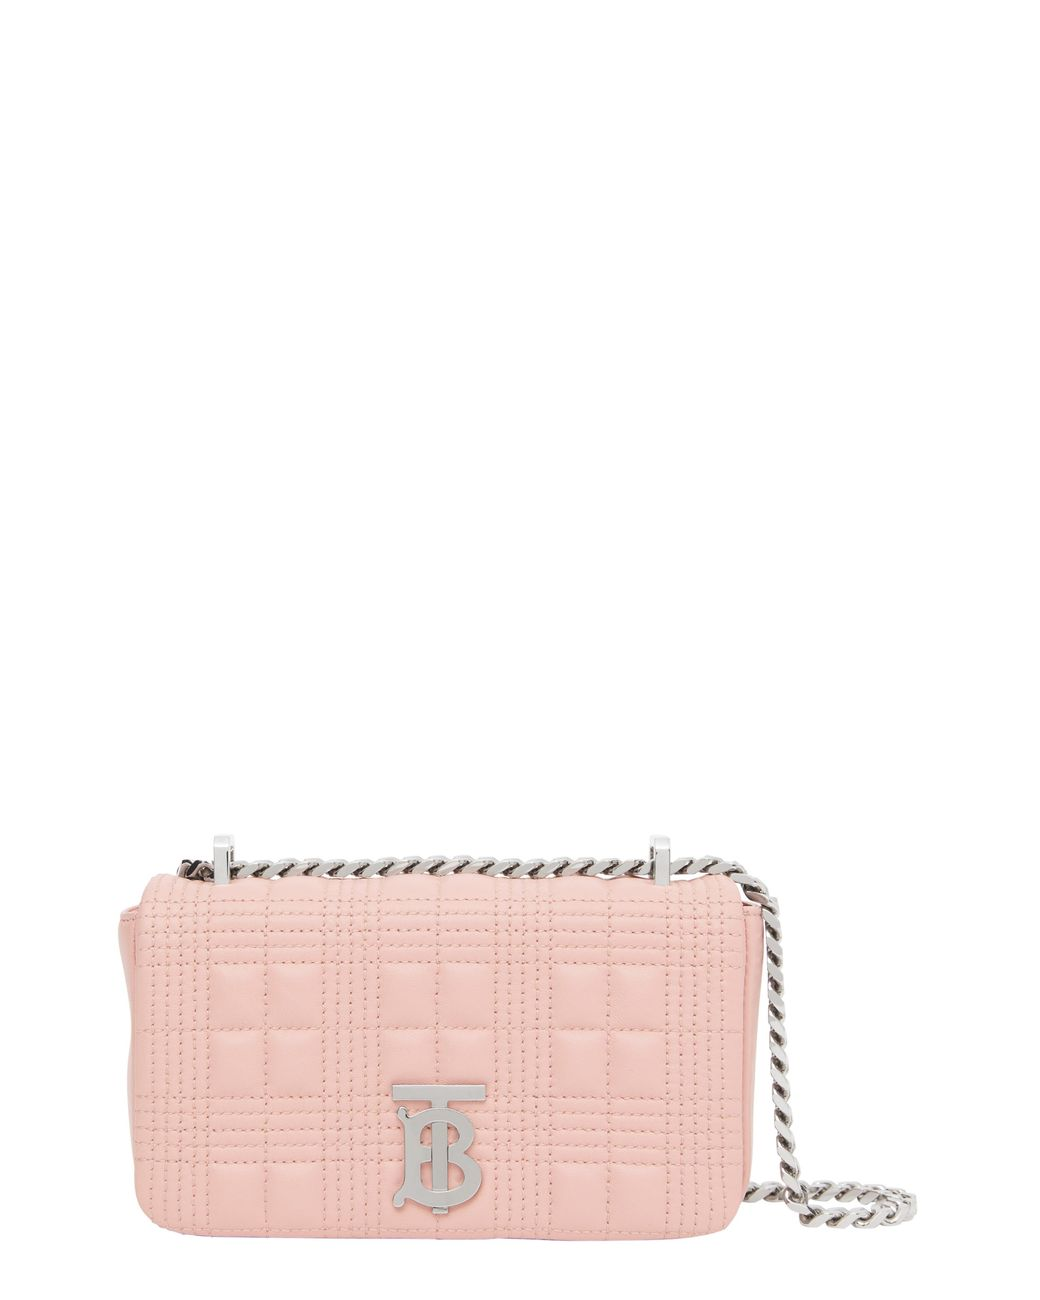 Burberry Leather Mini Lola Quilted Lambskin Bag in Blush Pink (Pink) - Lyst